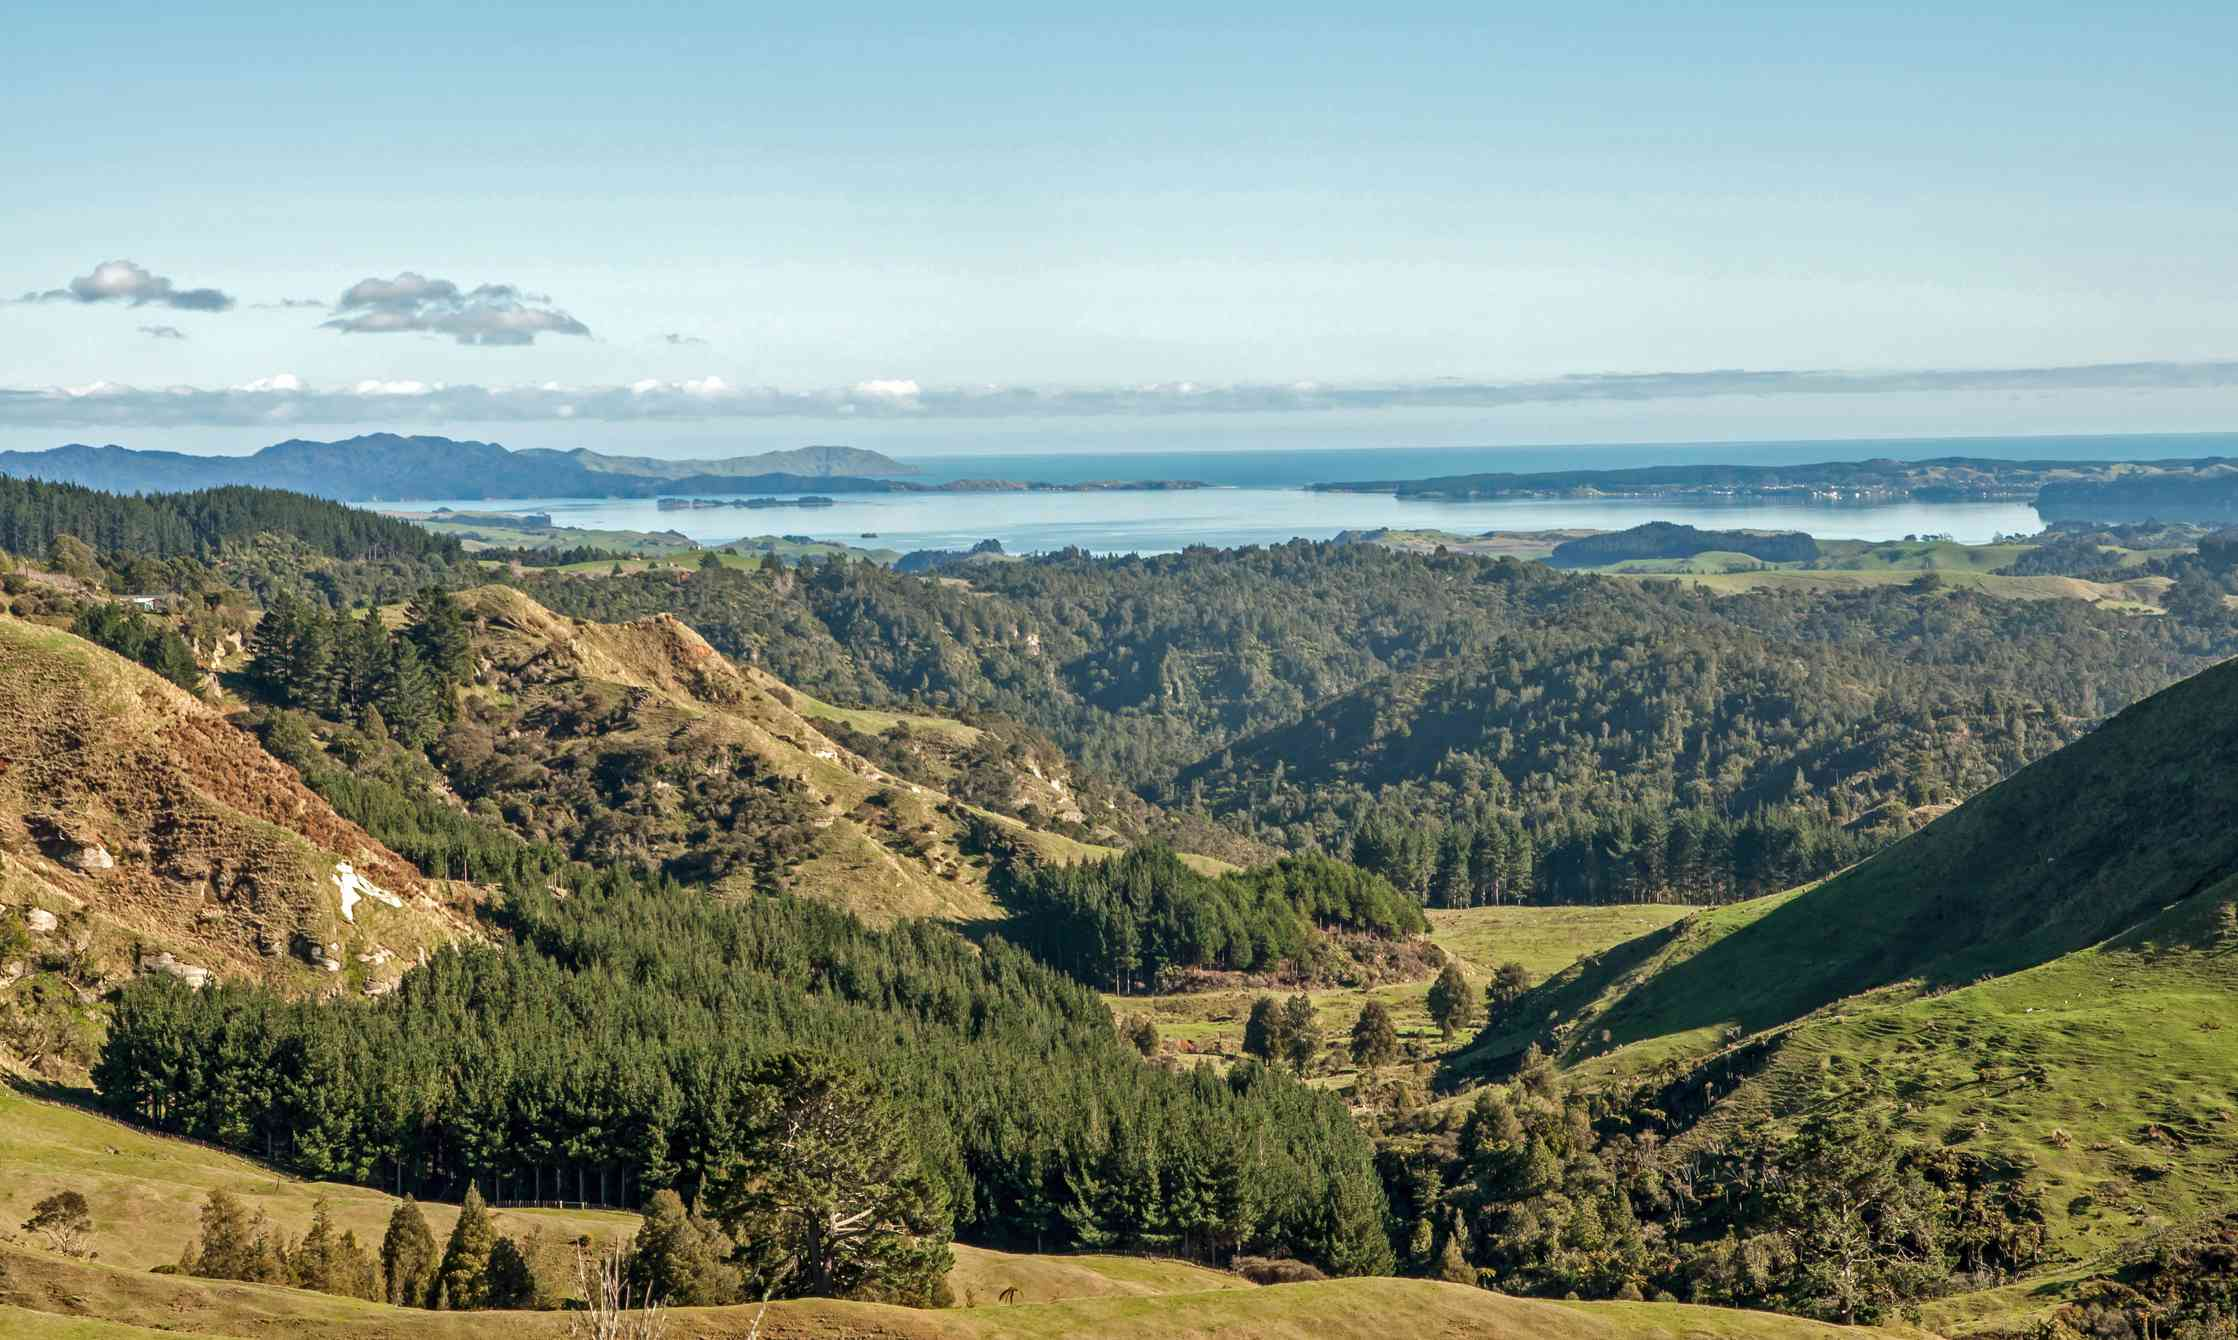 View of New Zealand landscape with evergreen trees and hills